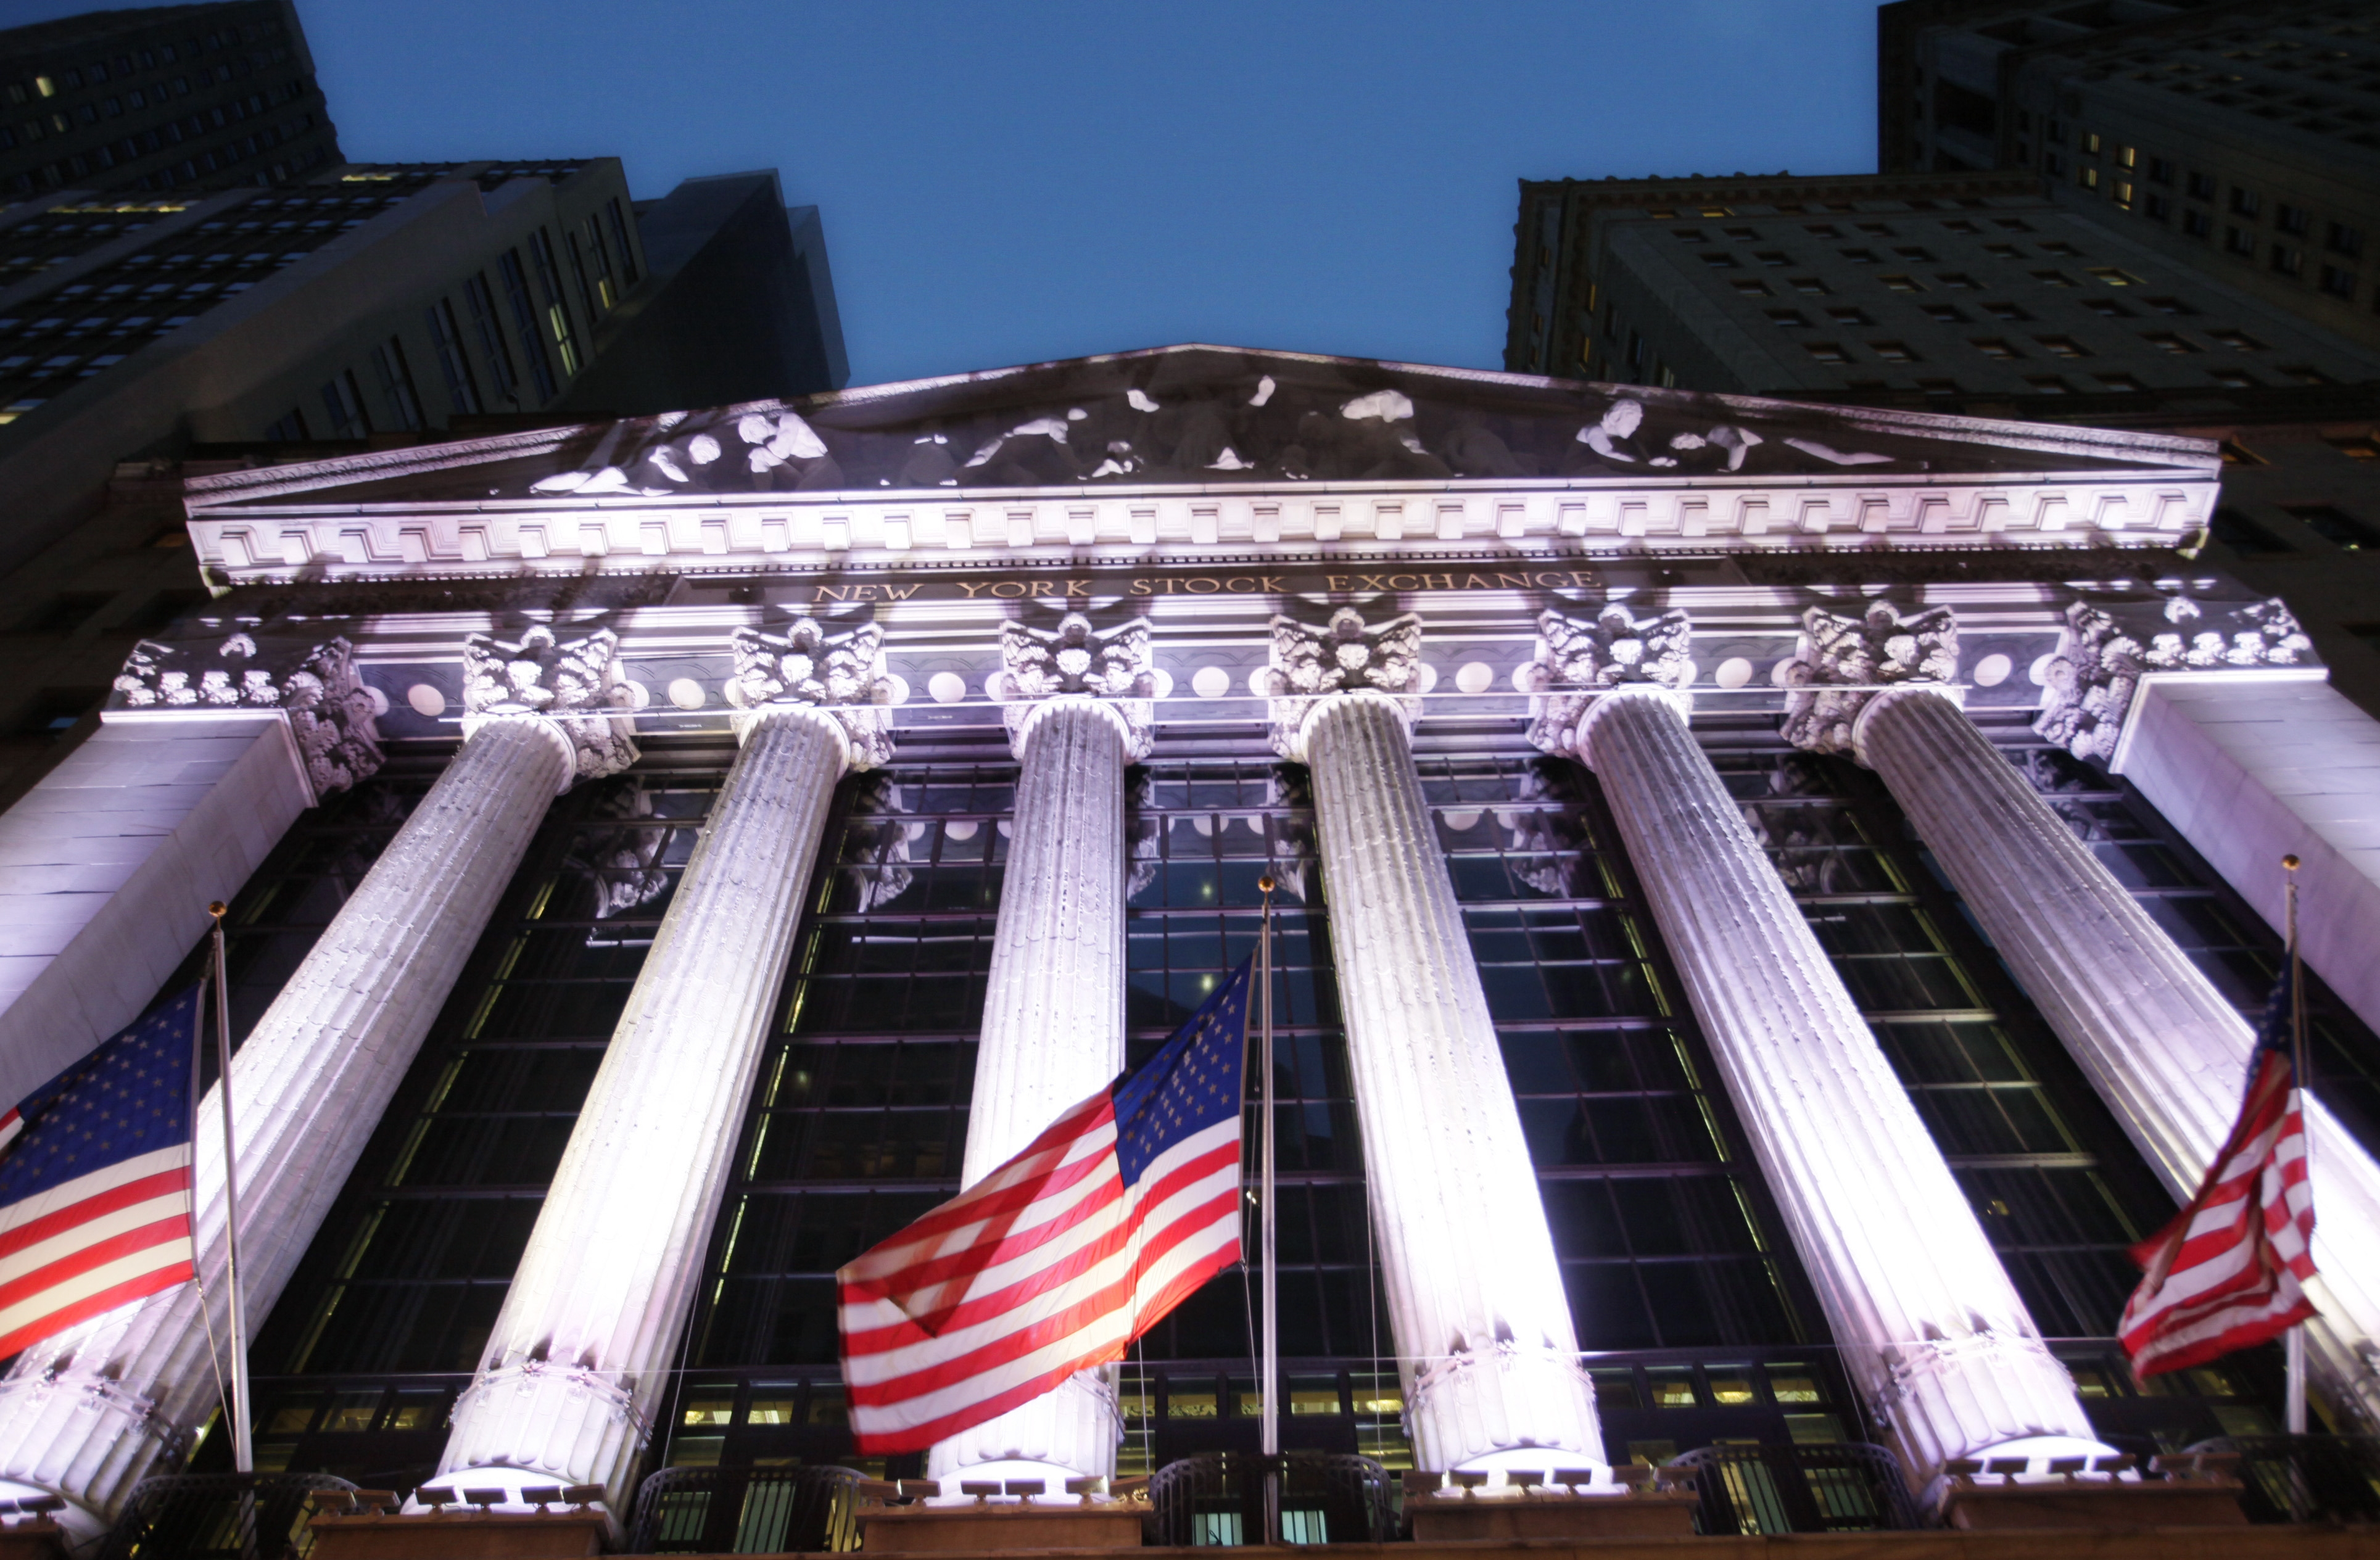 U.S. stocks saw very little change on Wednesday following a five-day rally in equities that sent the Dow Jones Industrial Average above 18,000 for the first time.